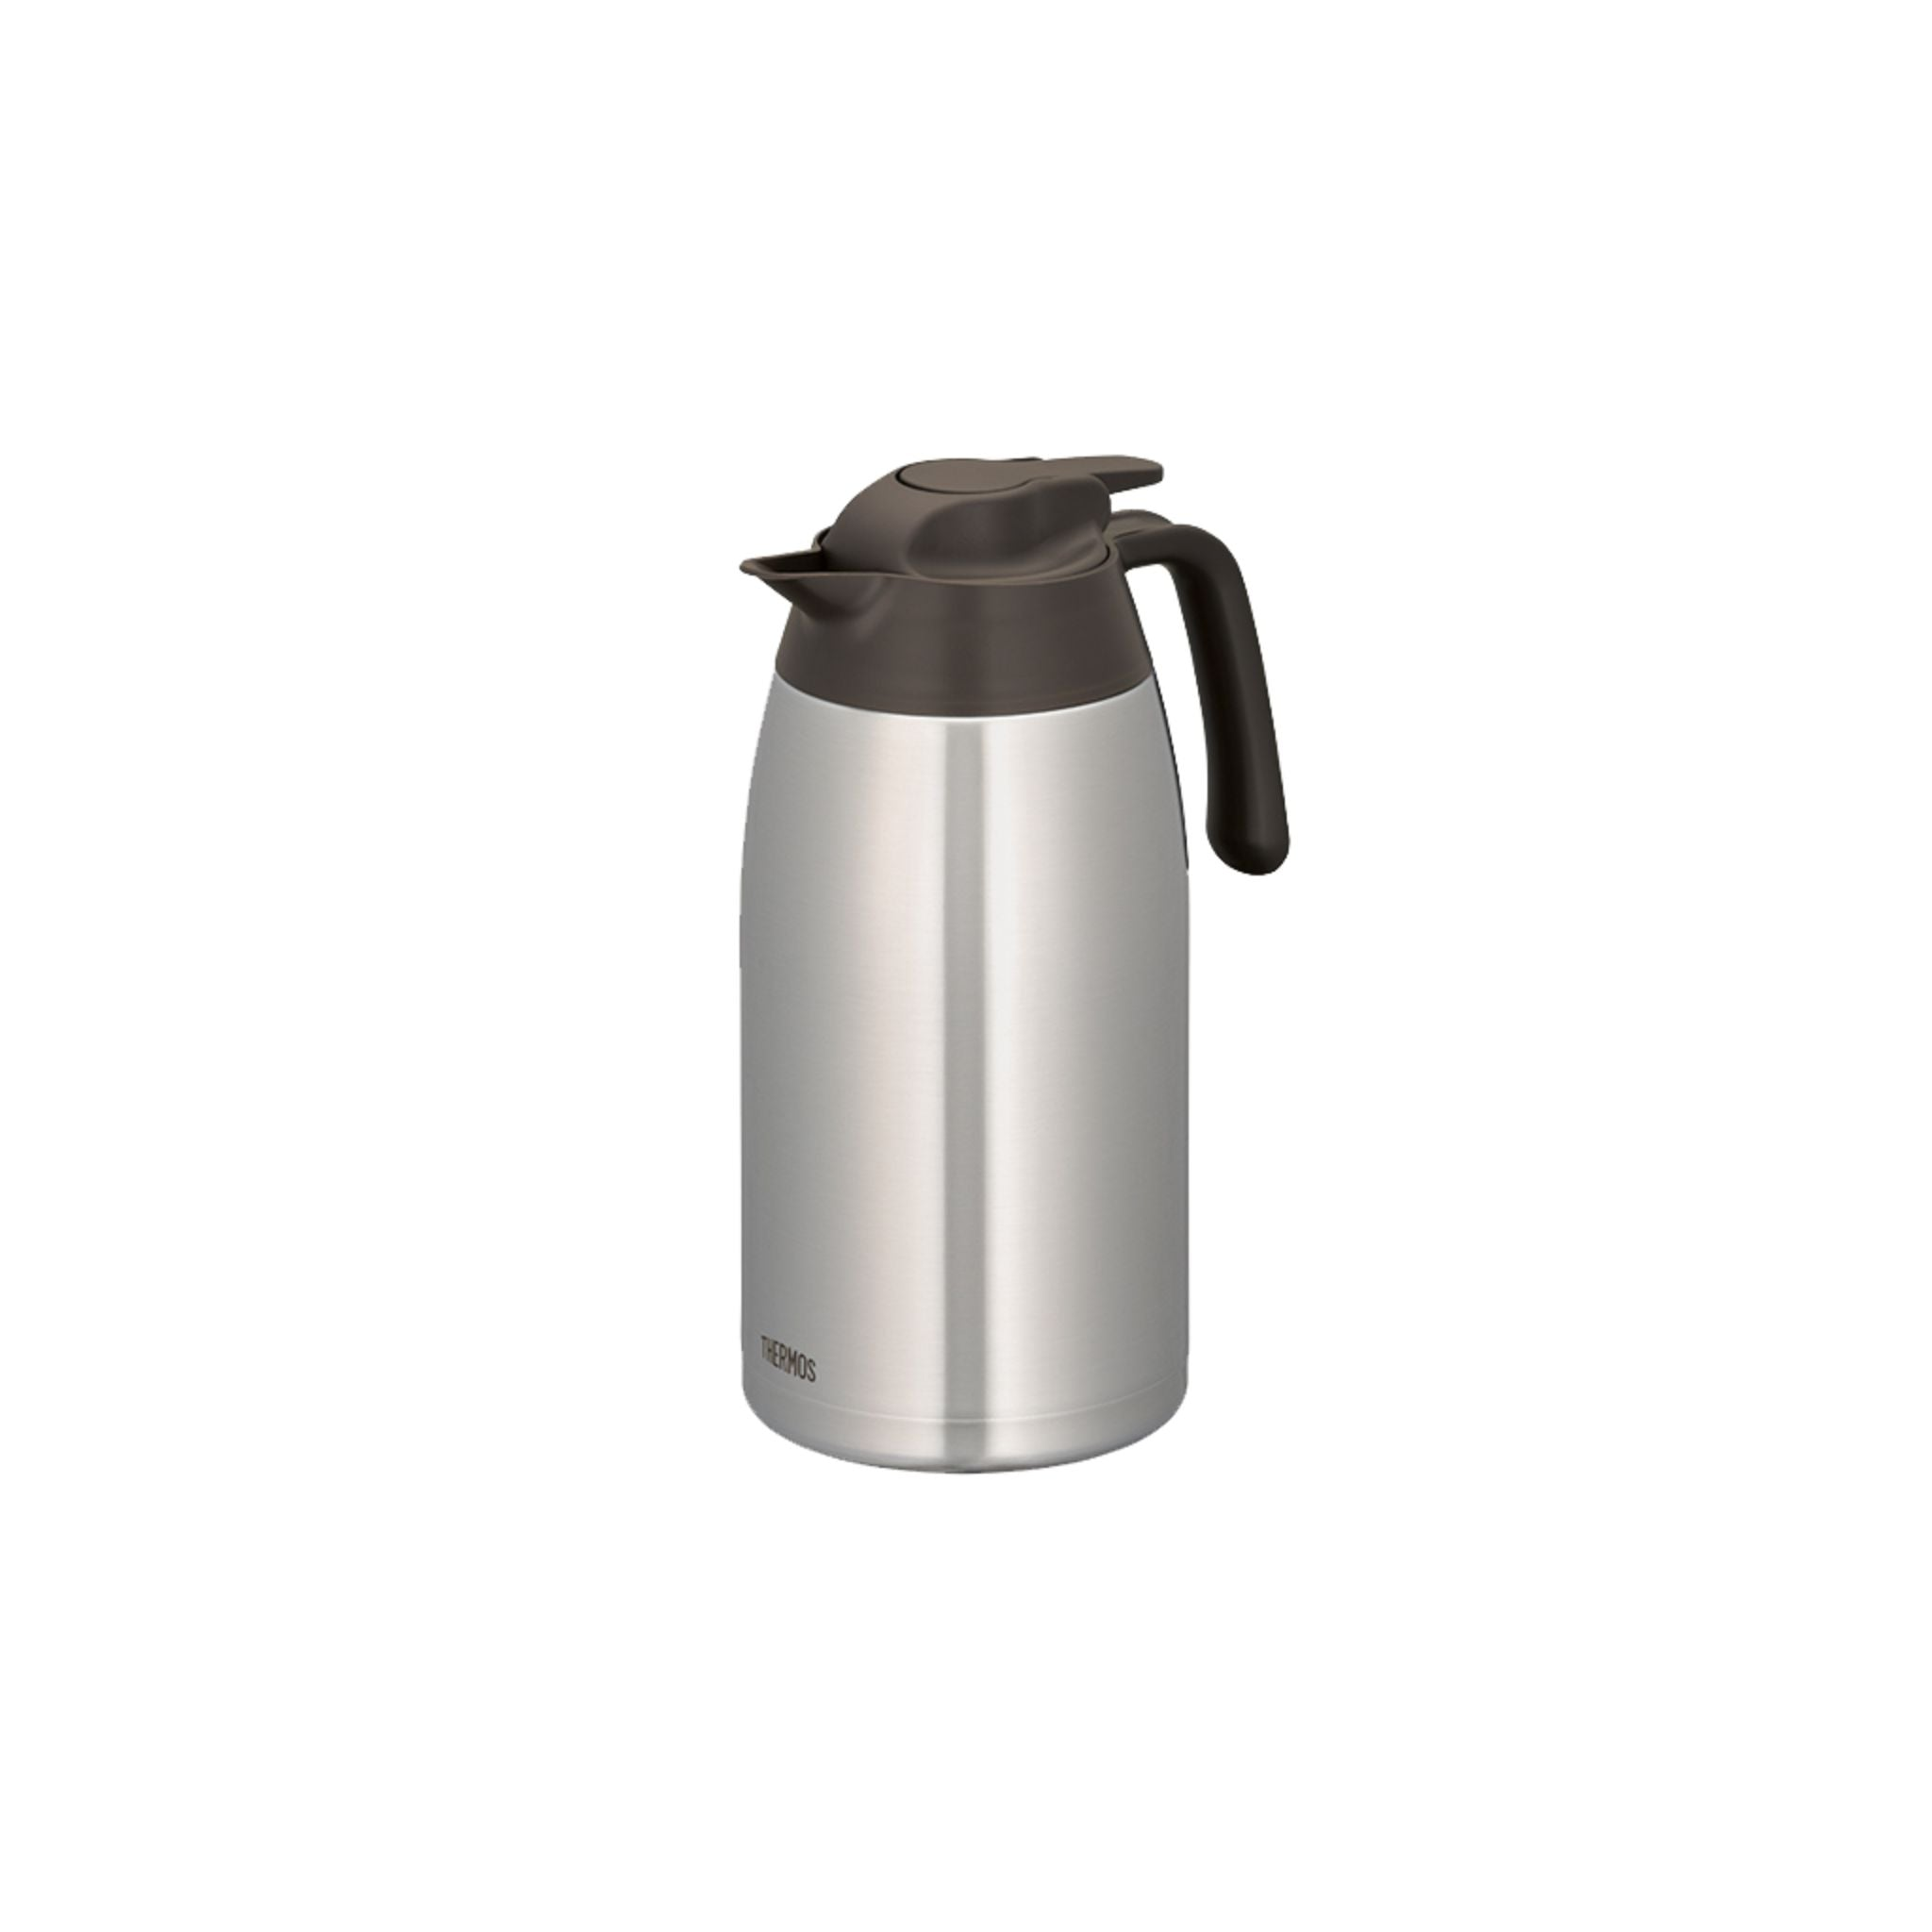 Thermos 2.0L Stainless Steel Vacuum Insulation Carafe - Stainless Brown